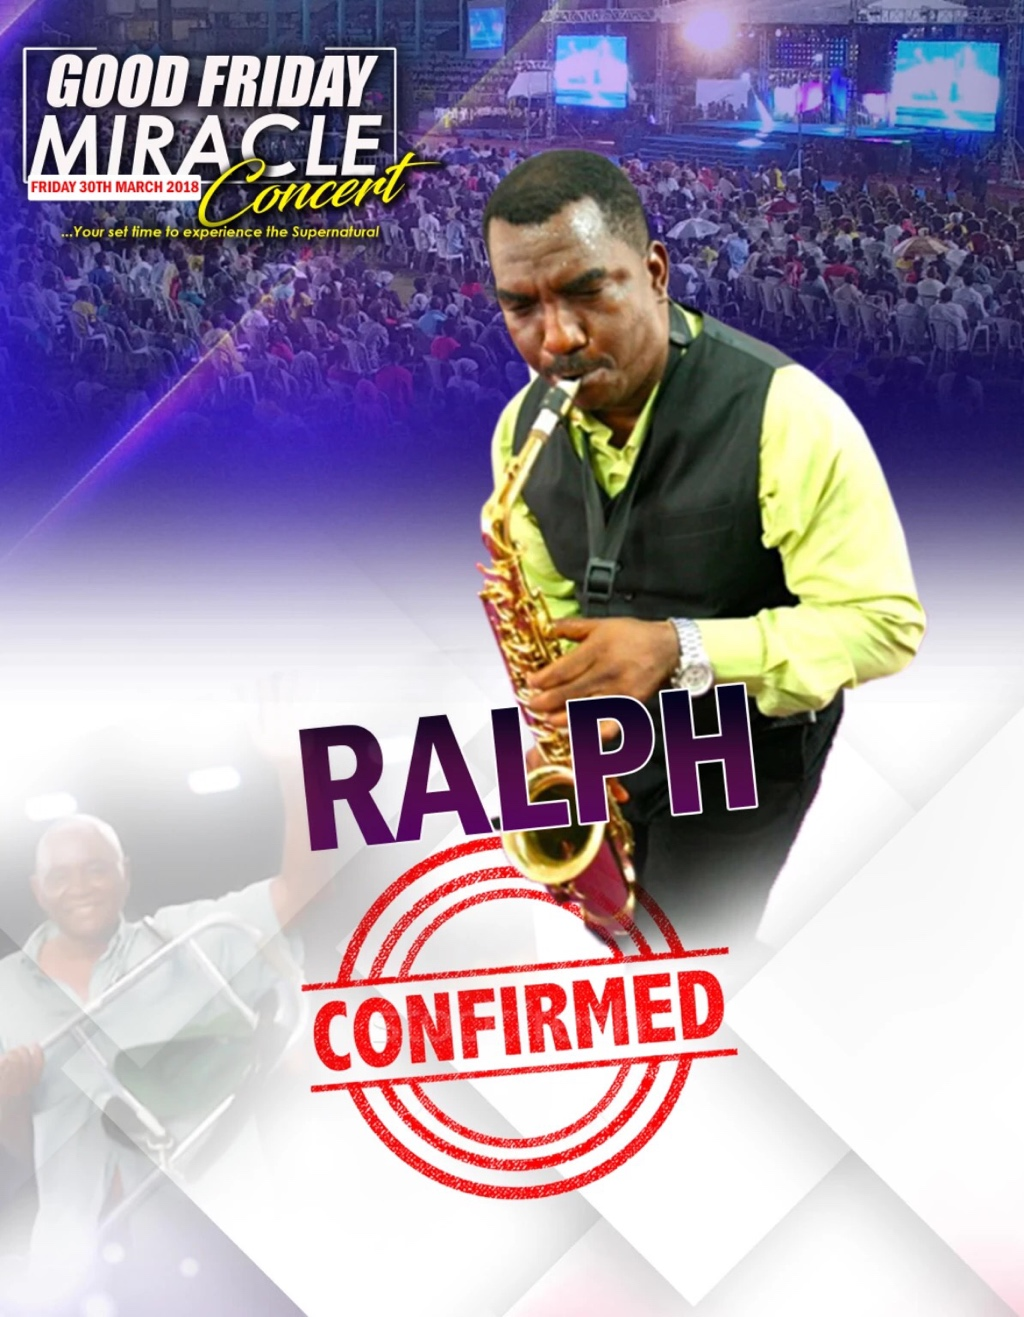 Ministering @ the #GFMC2018 Ralph